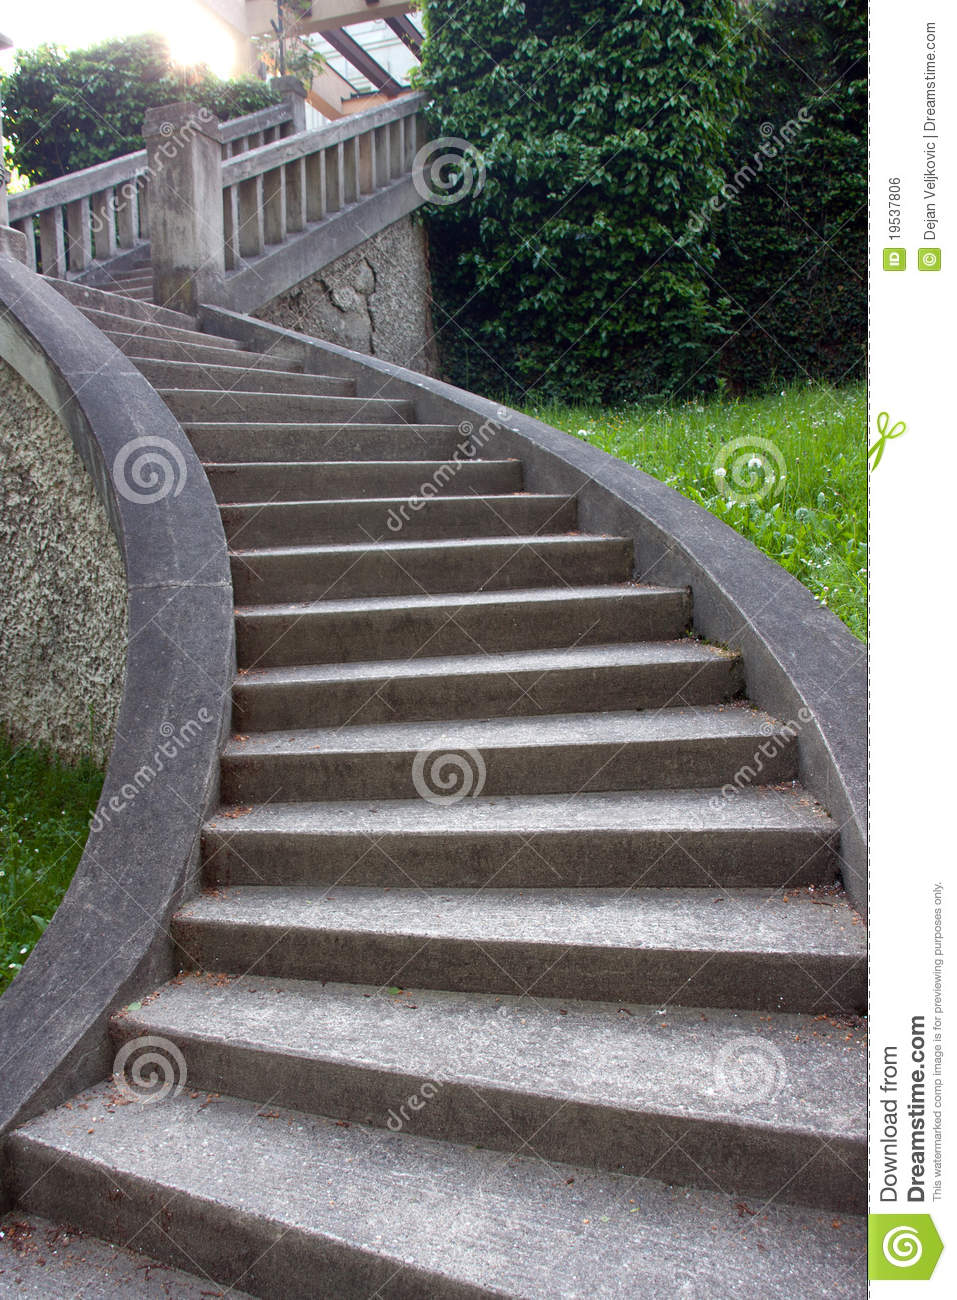 Vintage stairs of stone stock photo. Image of home, column